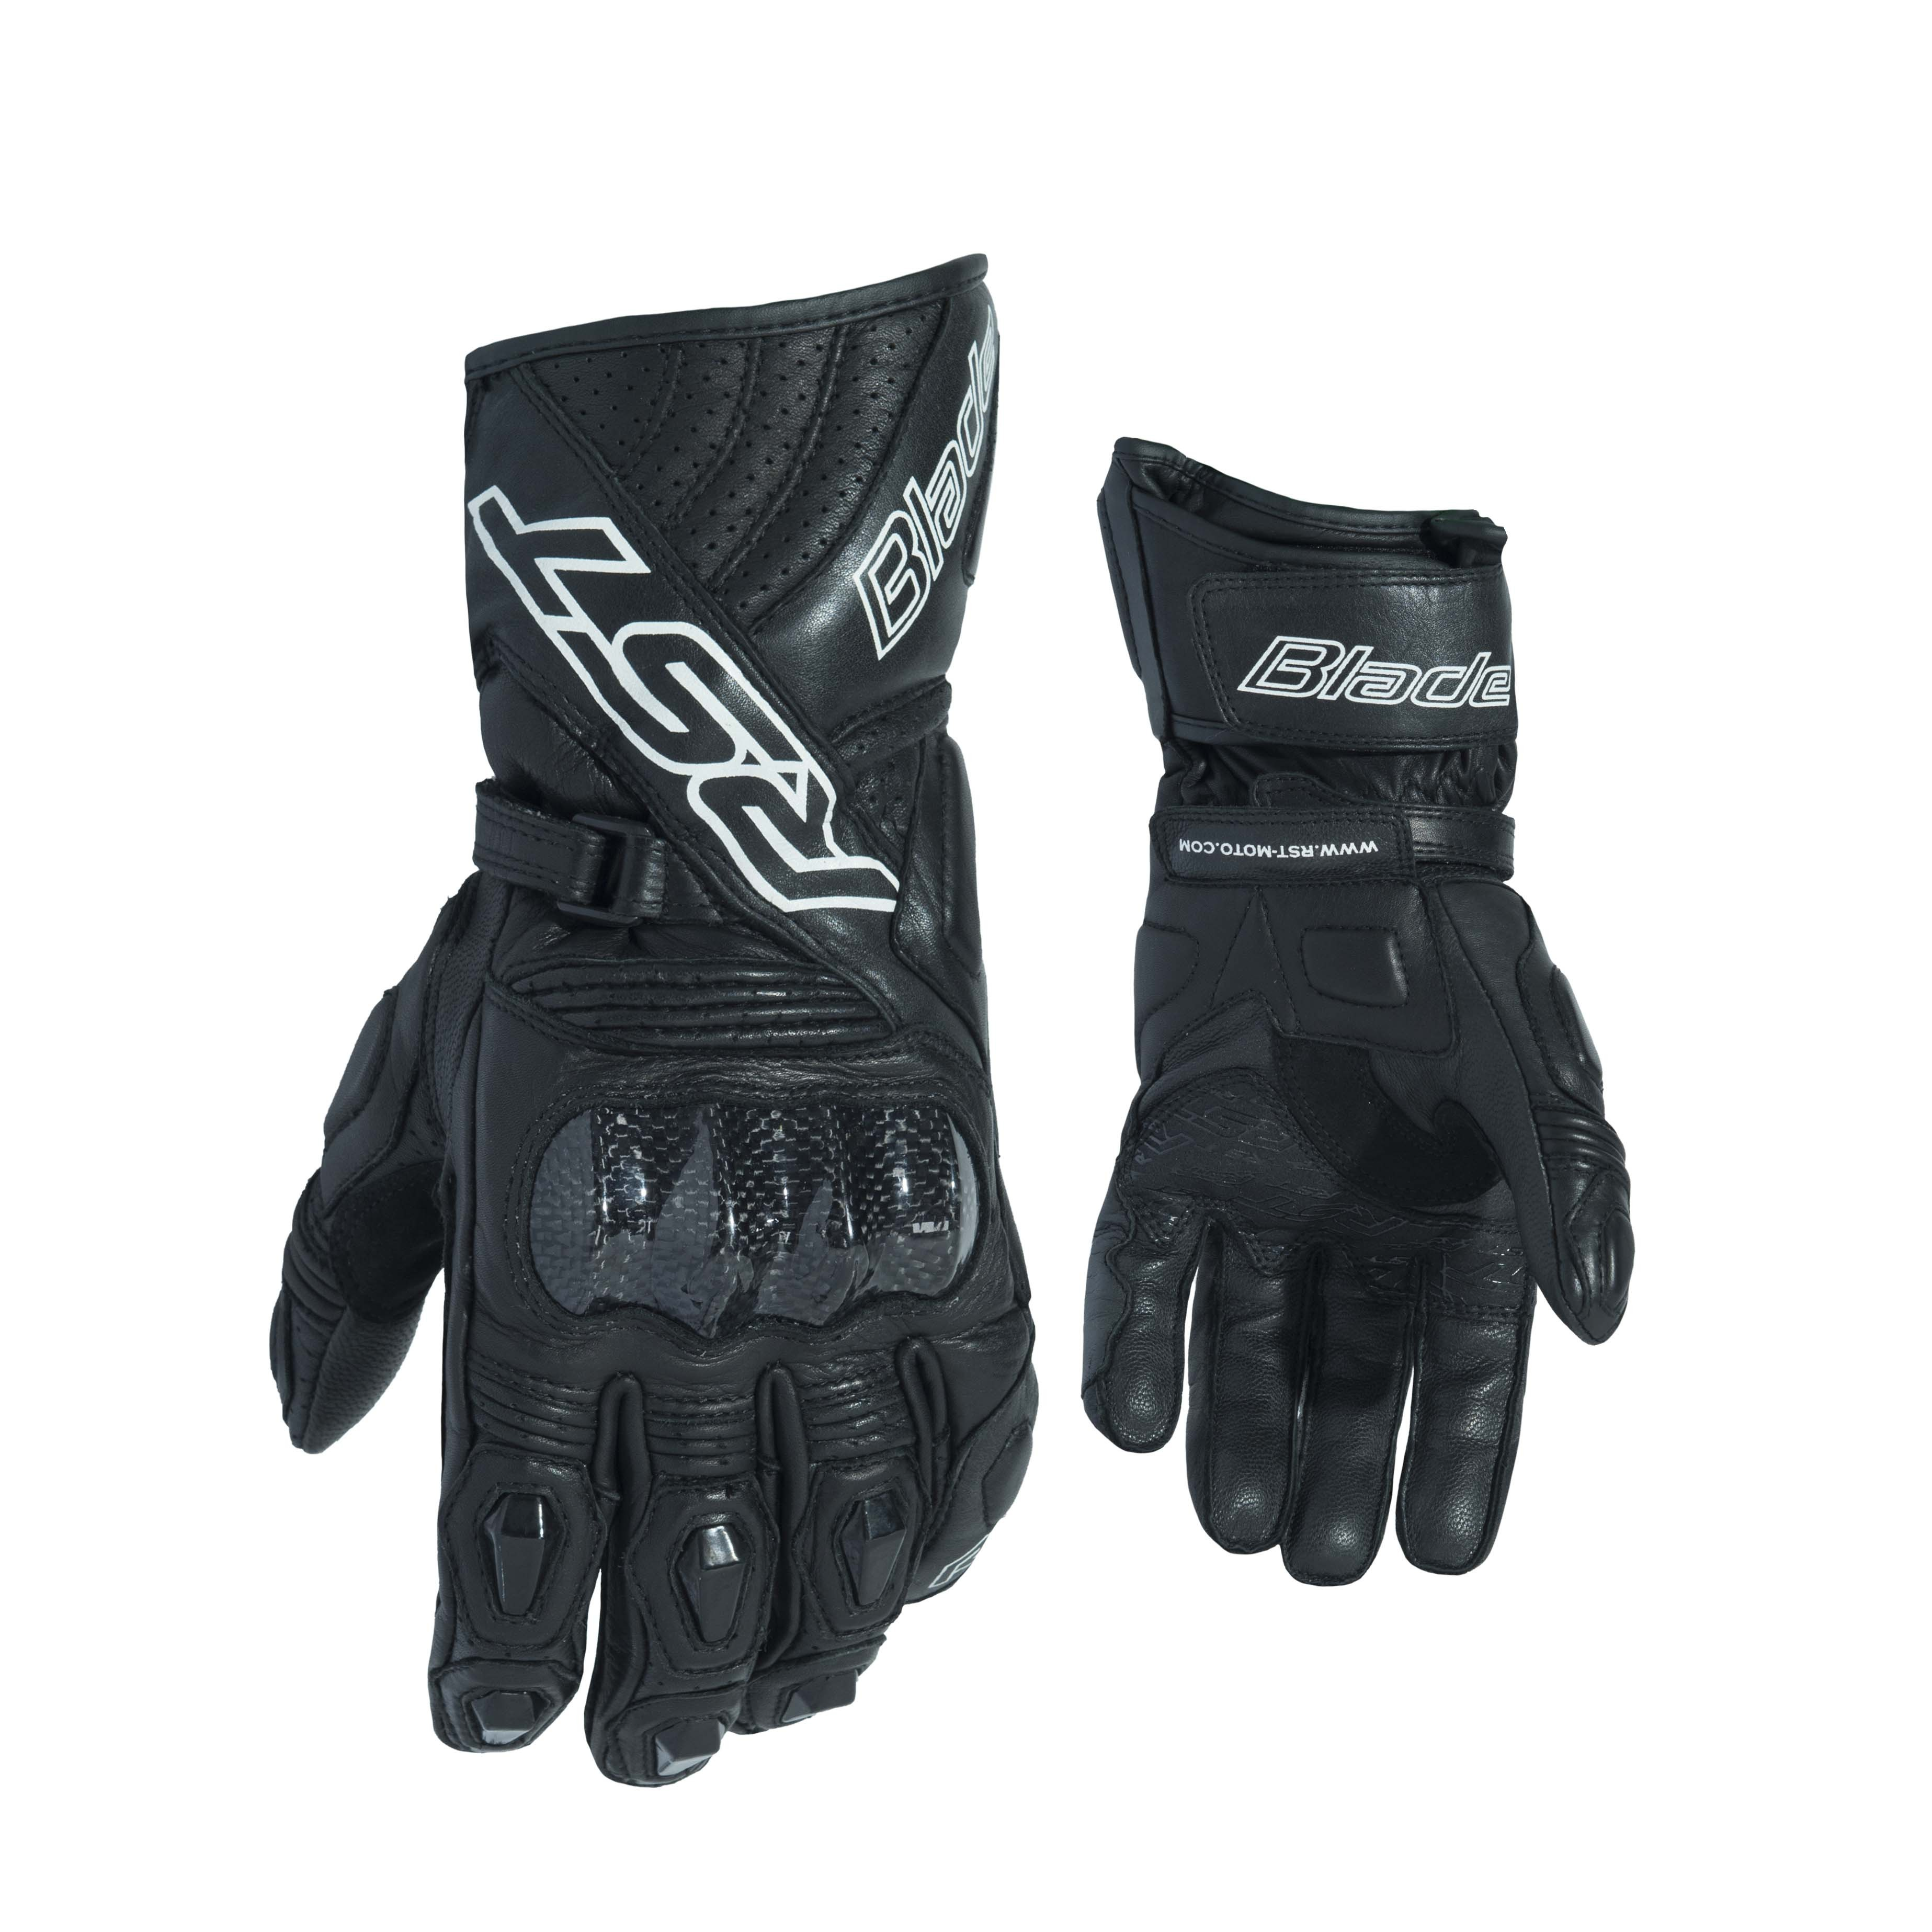 Rst Blade Ii Ce Leather Motorcycle Glove